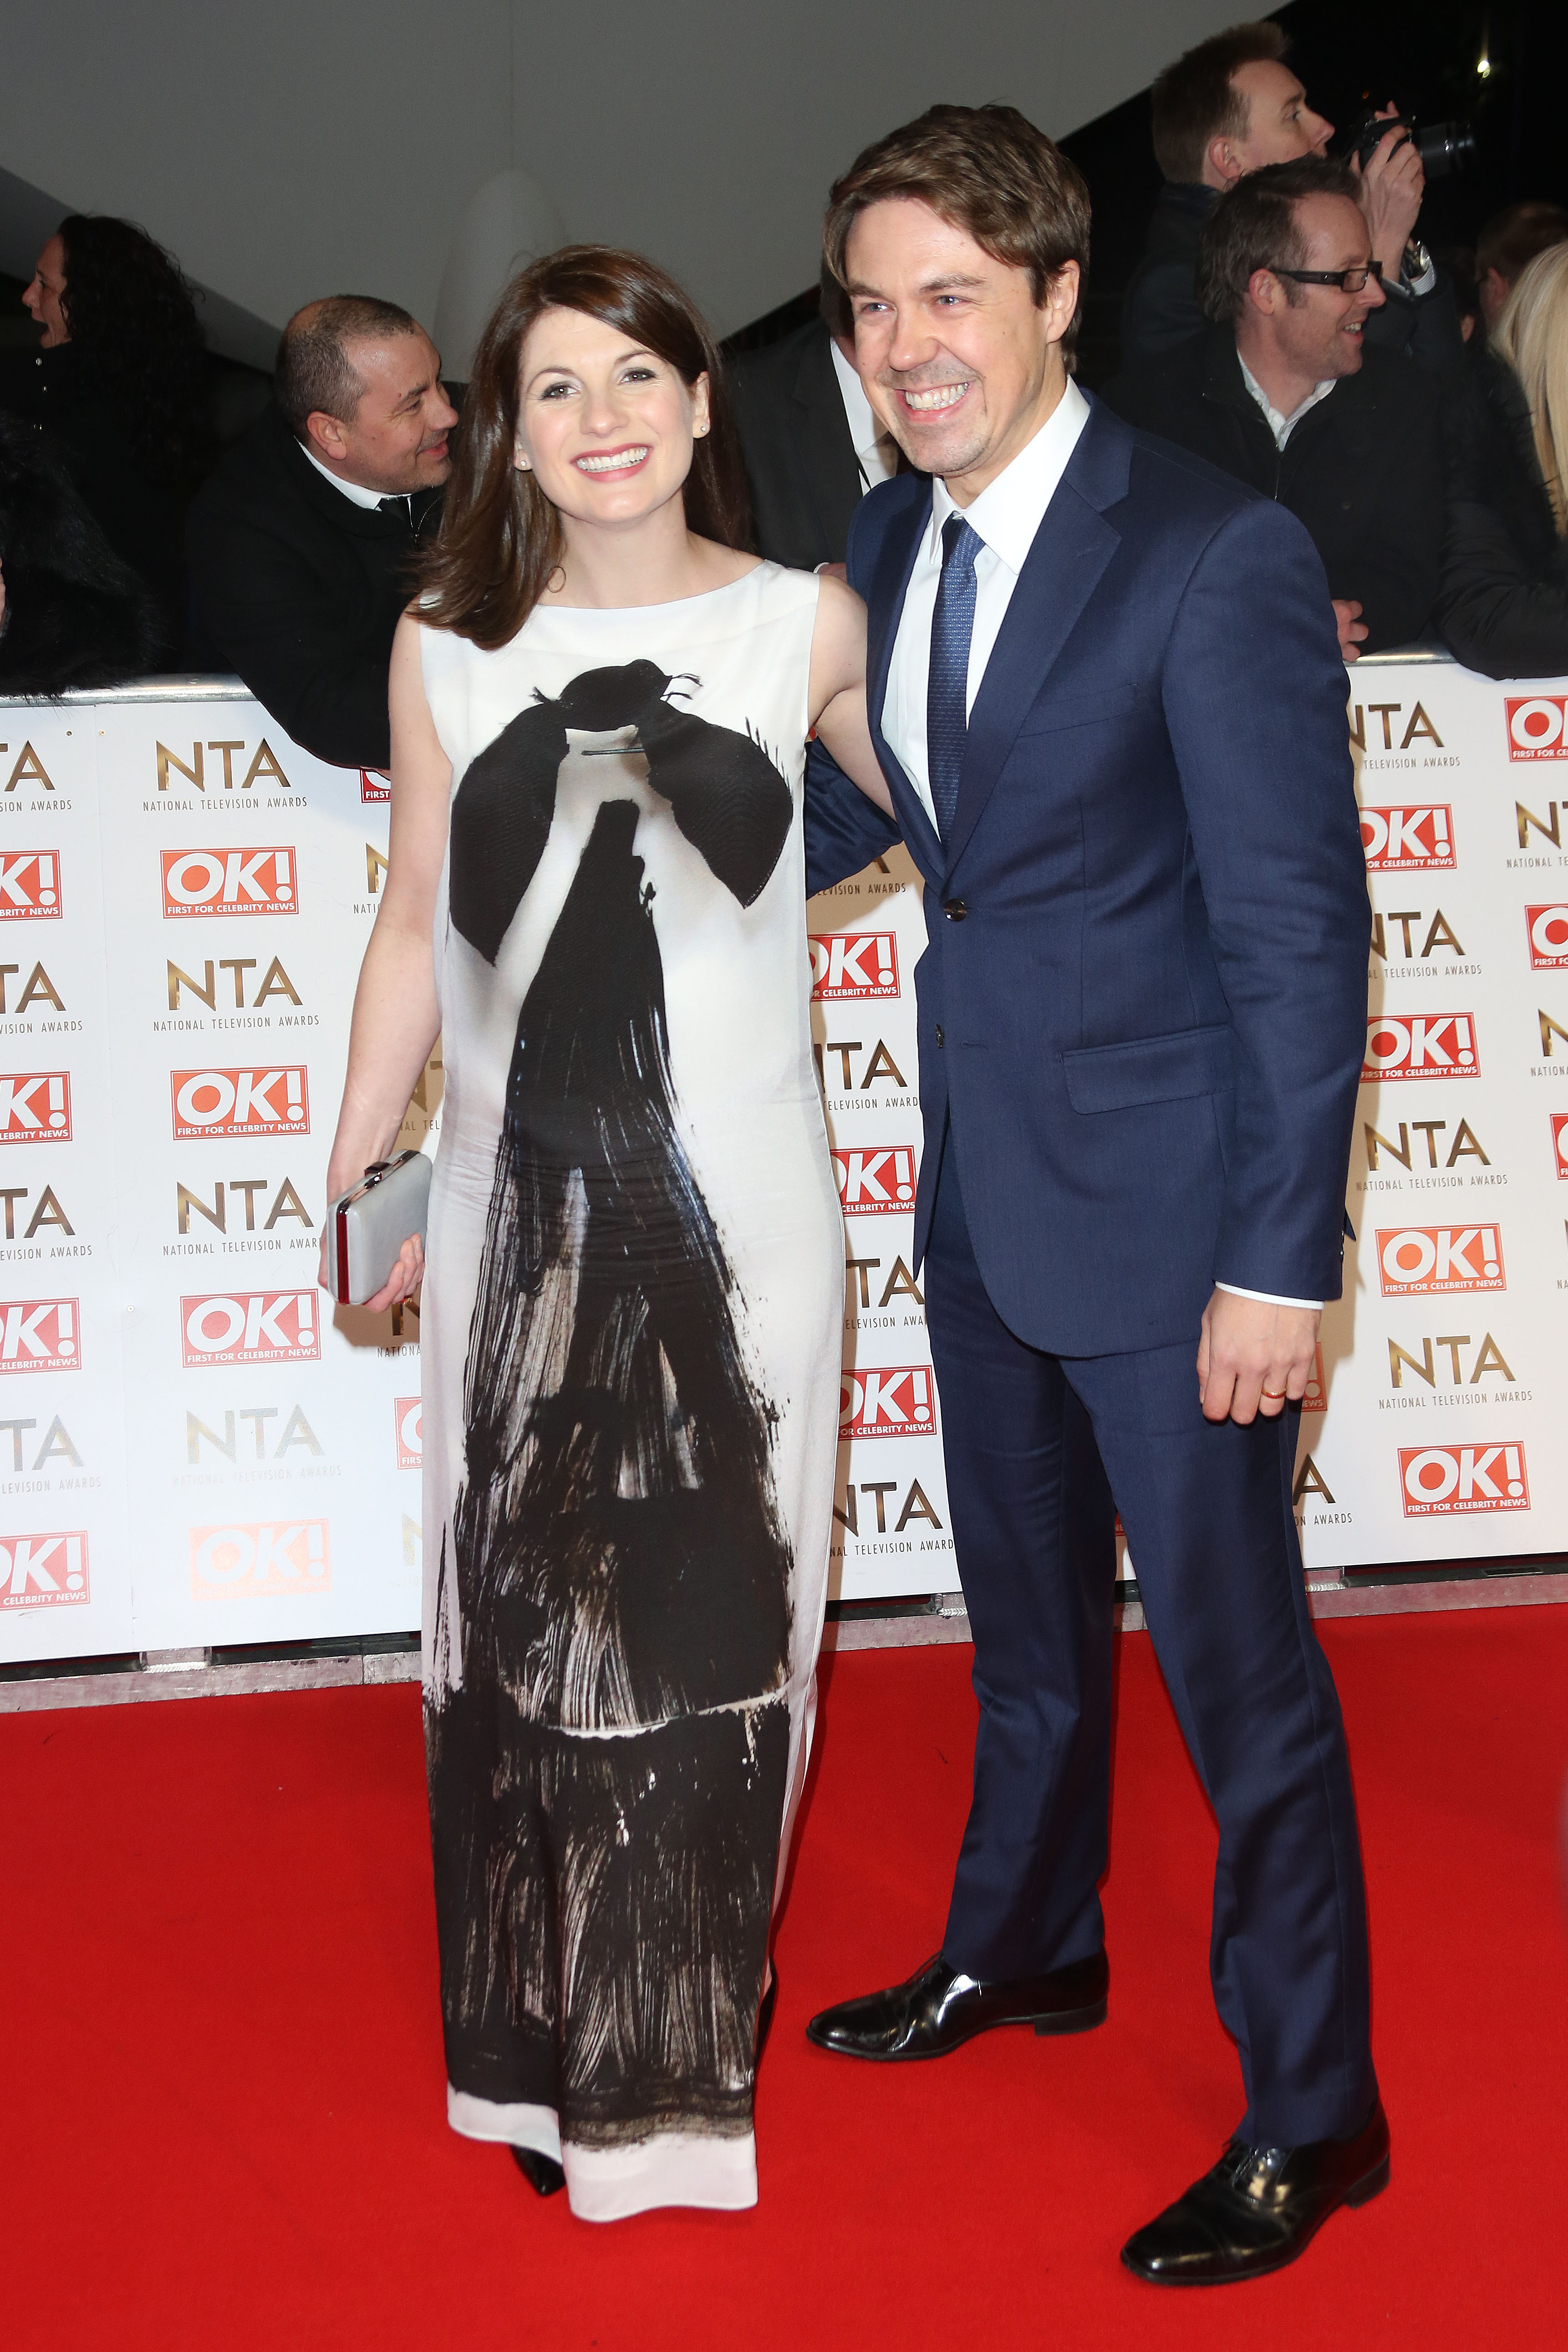 The National Television Awards (NTA's) 2015 held at the O2 - Arrivals                                    Featuring: Jodie Whittaker, Andrew Buchan                  Where: London                  When: 21 Jan 2015                  Credit: Lia Toby/WENN.com